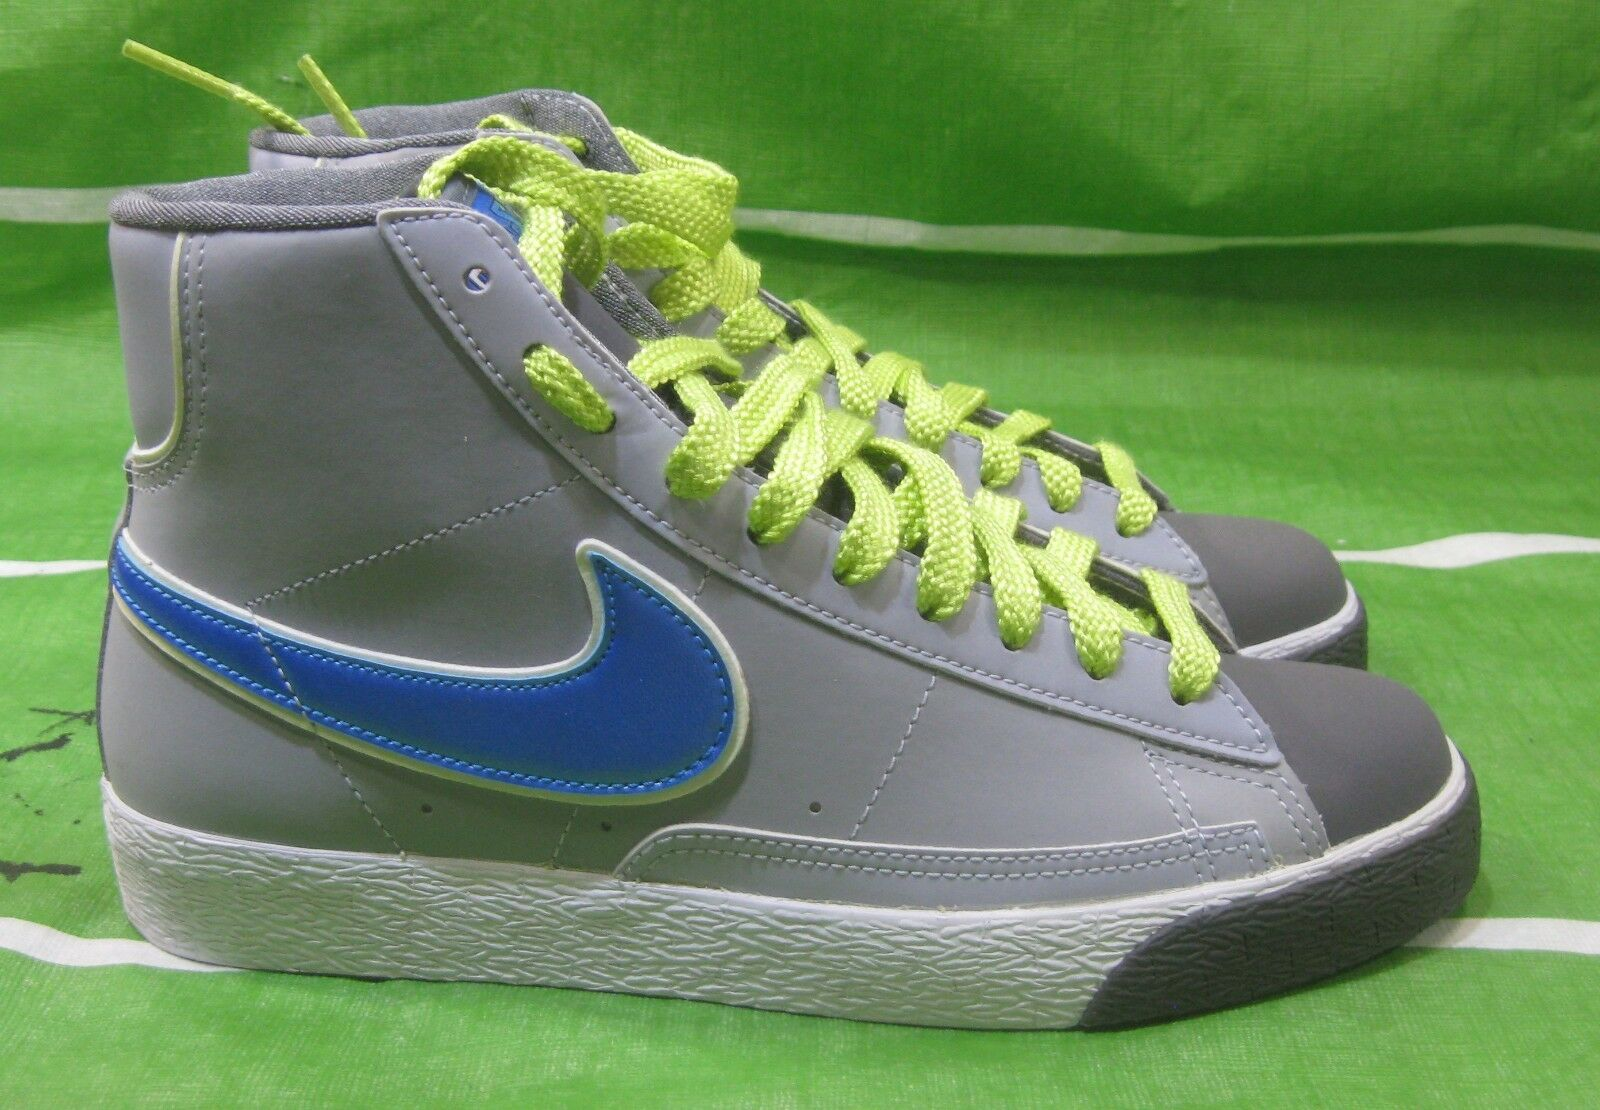 Nike Womens Blazer Mid Suede Vintage Grey bluee Trainers 317808 010 Size 7.5